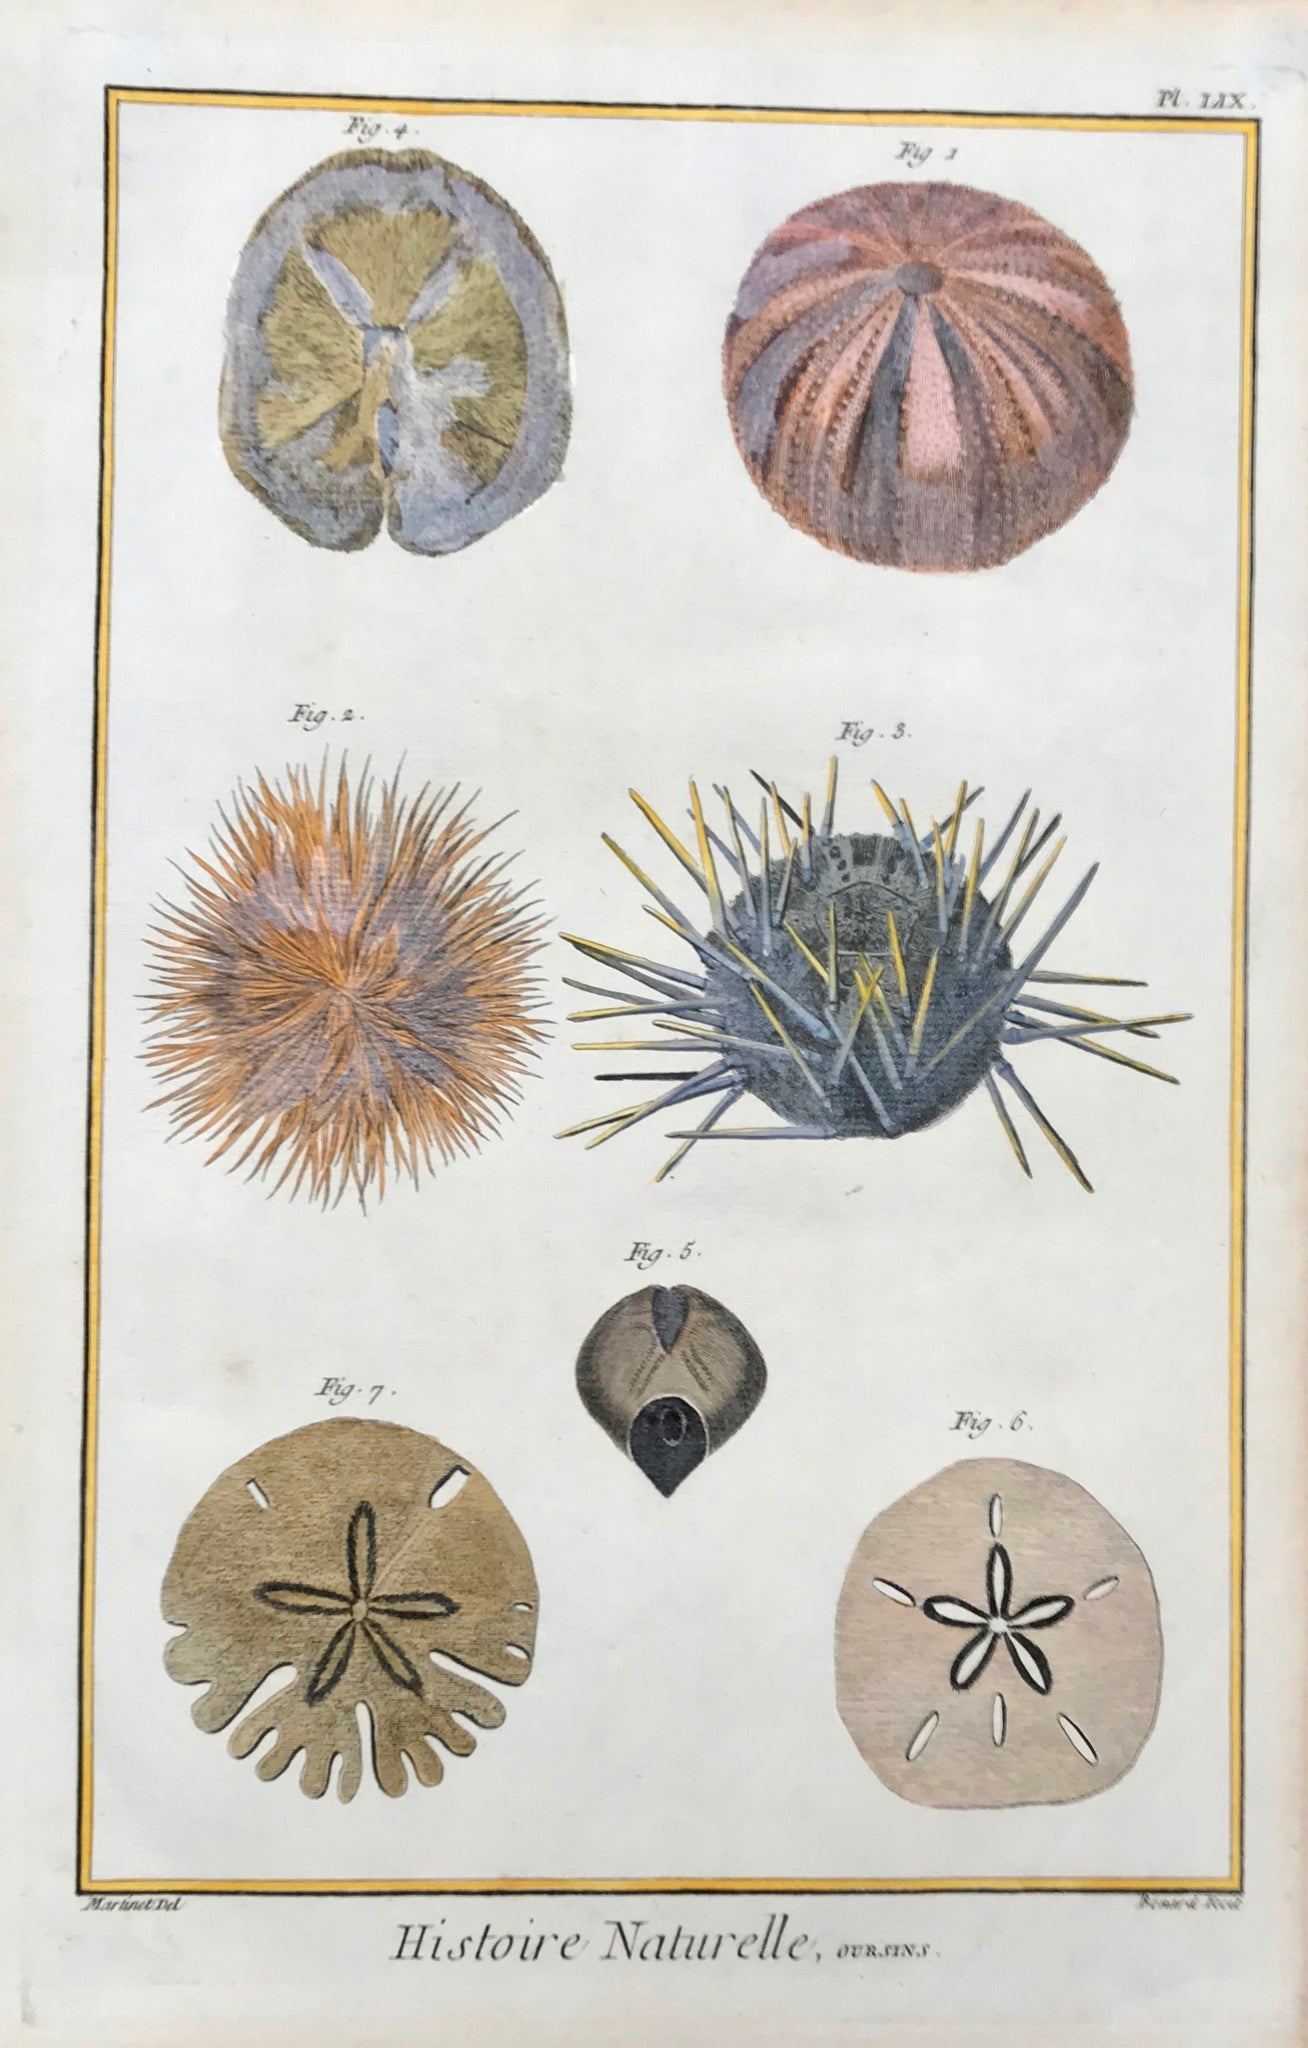 "Histoire Naturelle, Oursins  Sea Urchin  Copper etching by Benard after Martinet for ""Histoire Naturelle"", published 1751 in Paris. interior design, wall decoration, ideas, idea, gift ideas, present, vintage, charming, special, decoration, home interior, living room design"